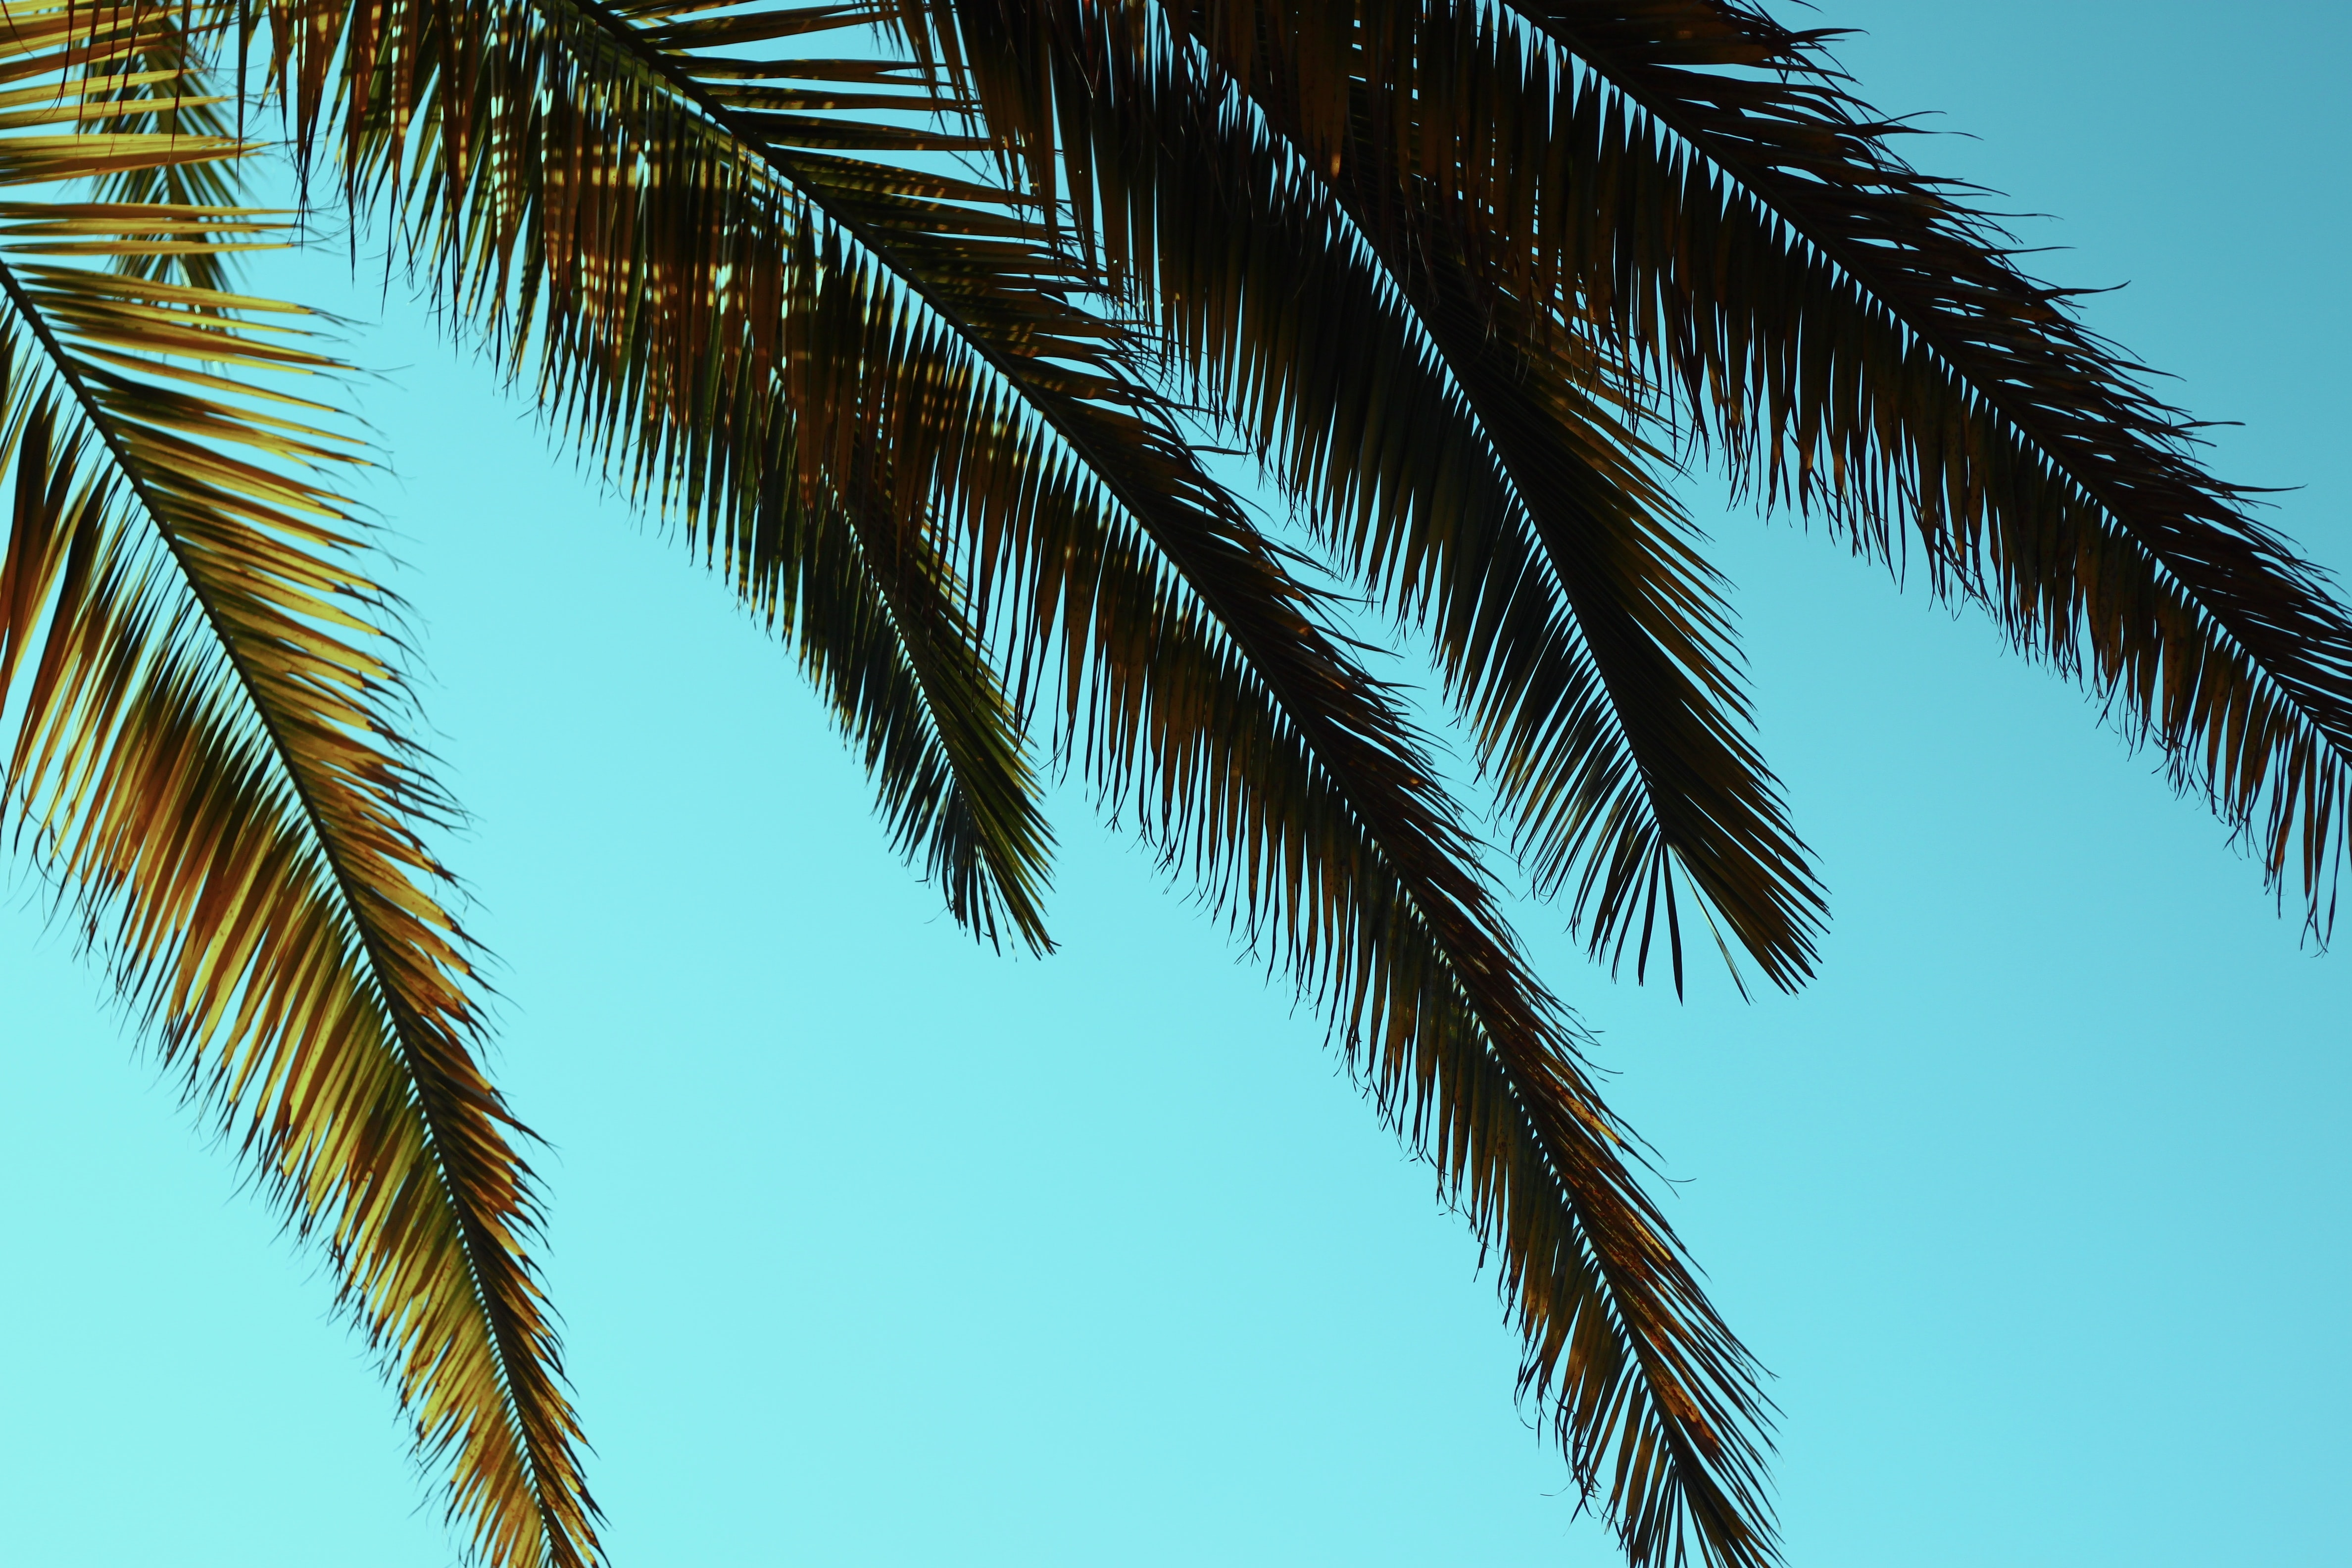 Tropical palm tree leaves against the blue sky at Viña del Mar